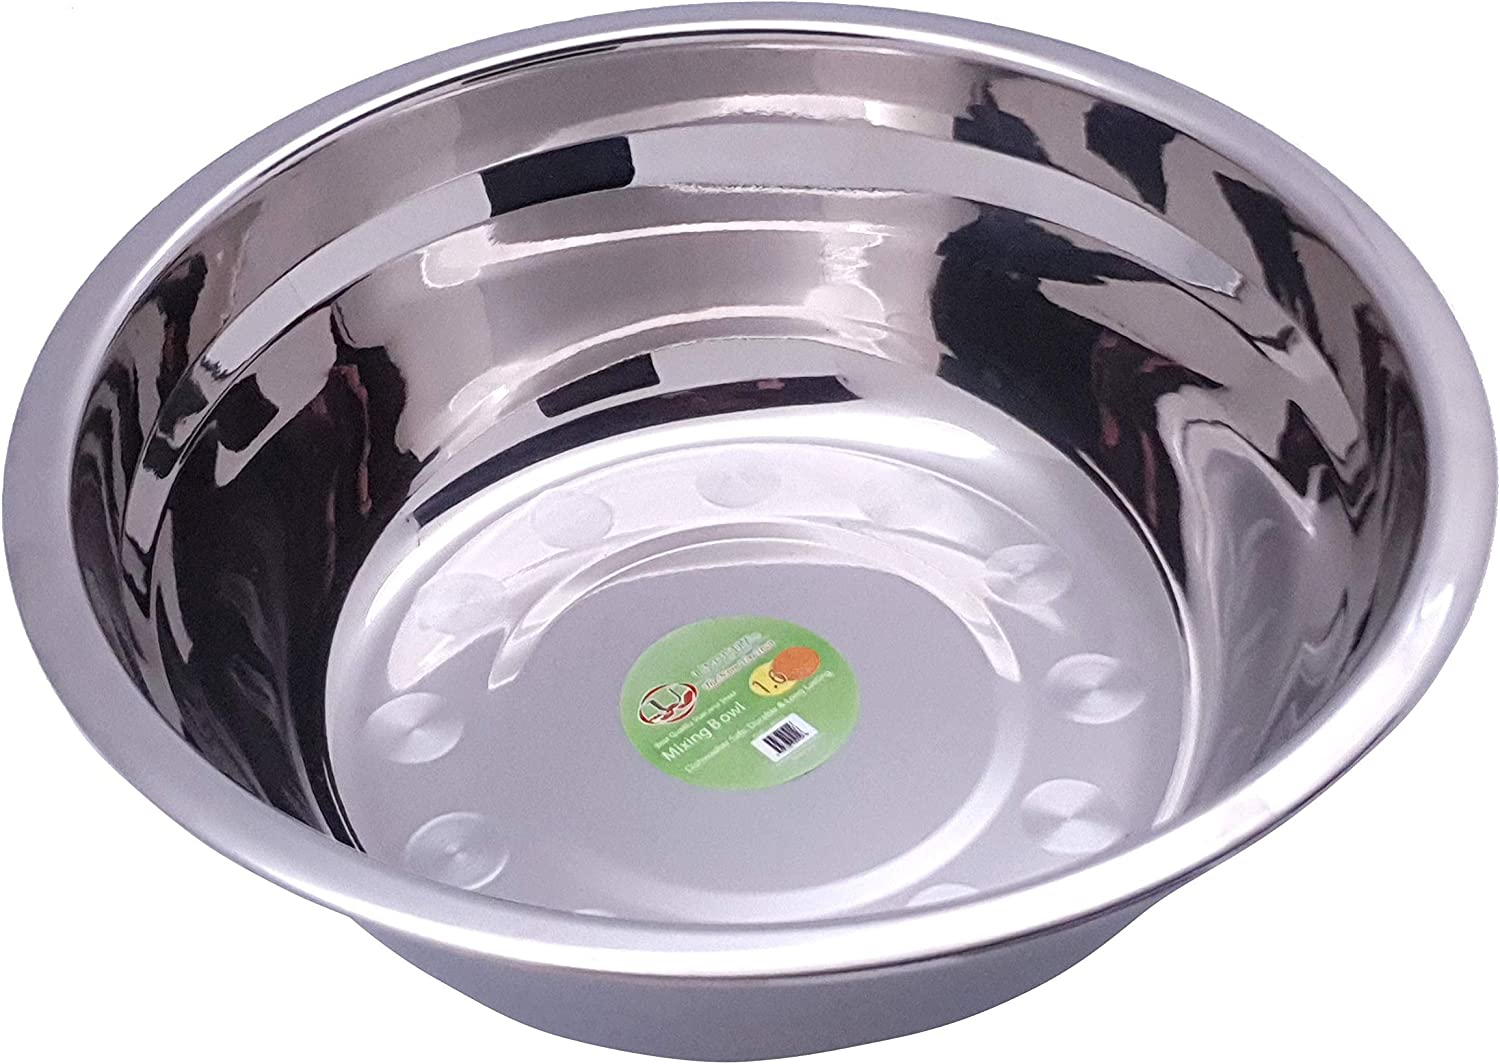 Uniware Stainless Steel Mixing Bowl 14 shop QT Houston Mall